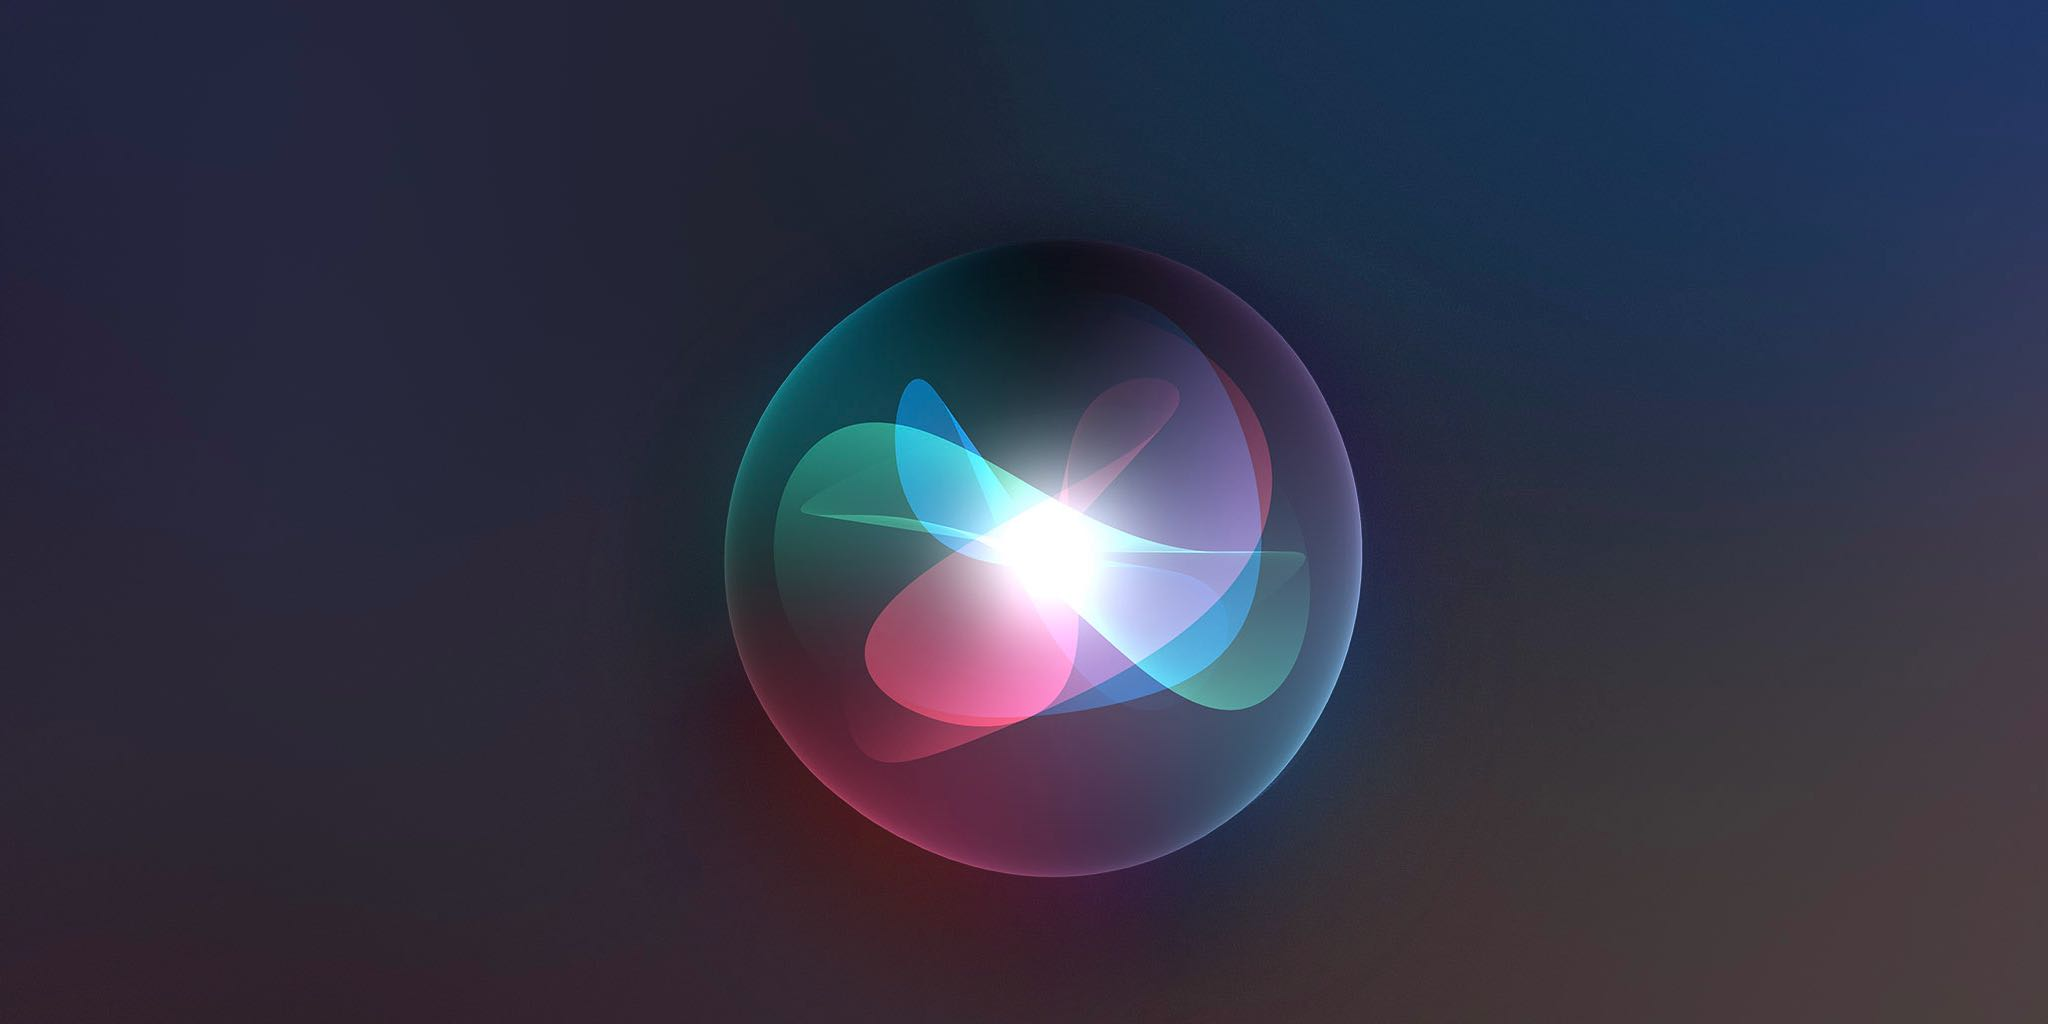 A featured image showing a Siri orb set against a dark background